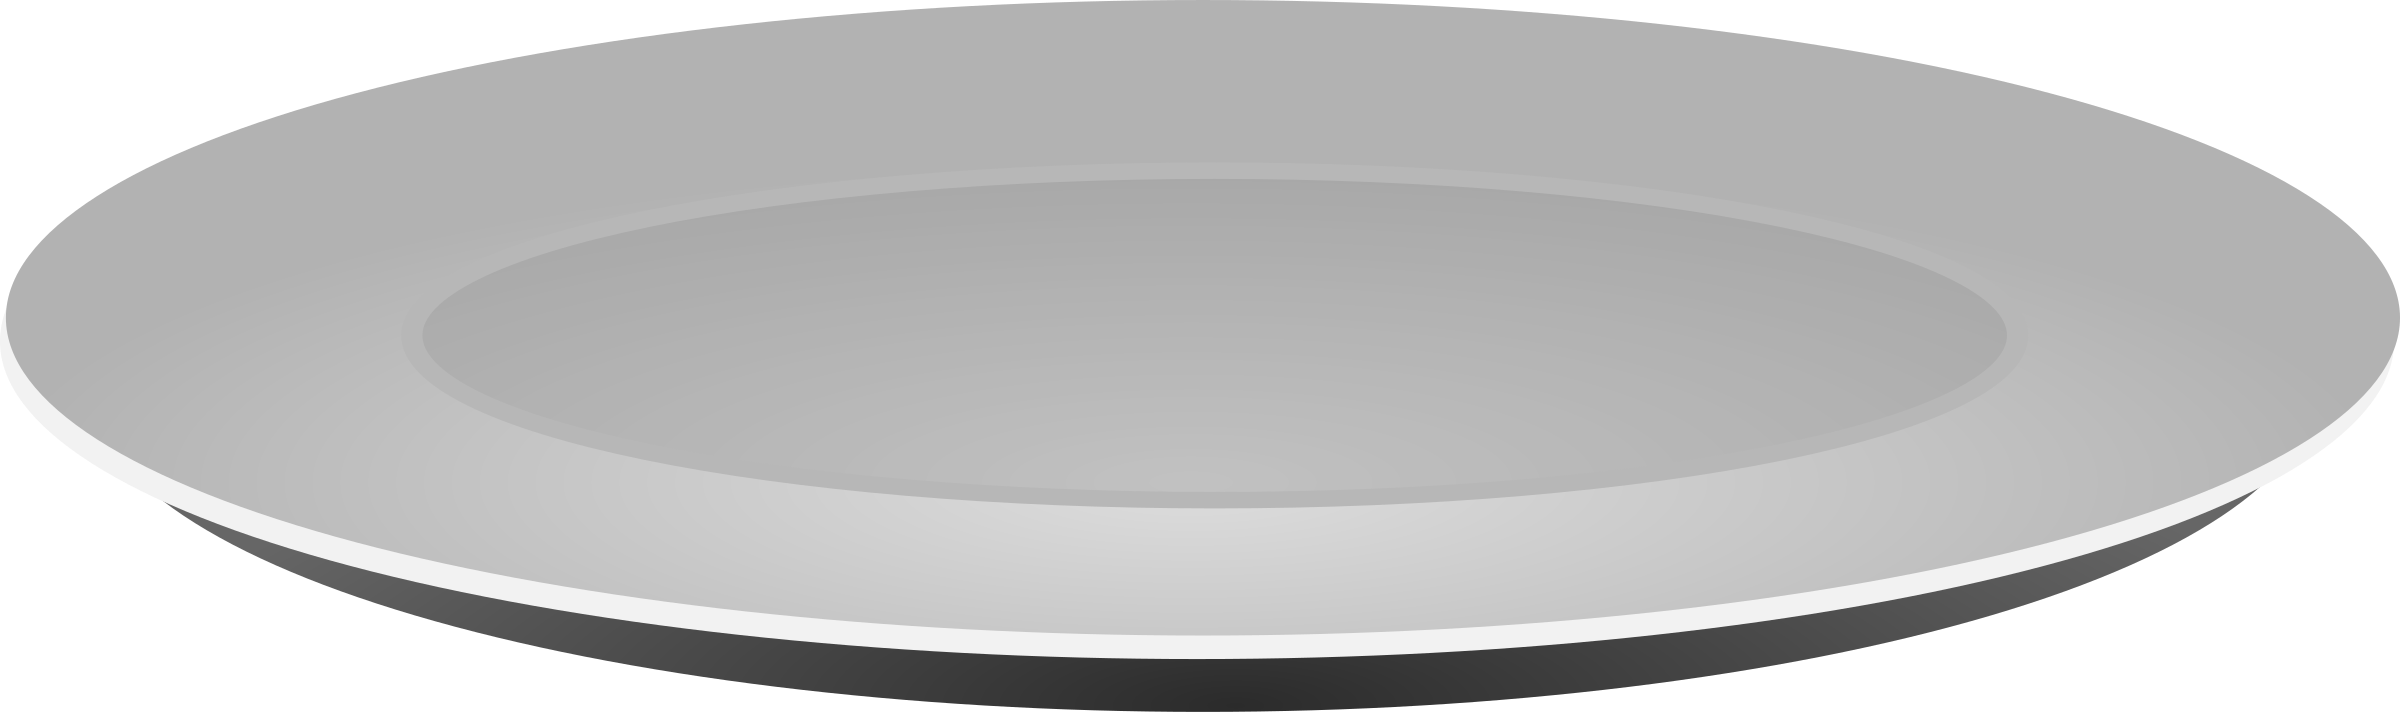 Plain Grey Plate by GR8DAN